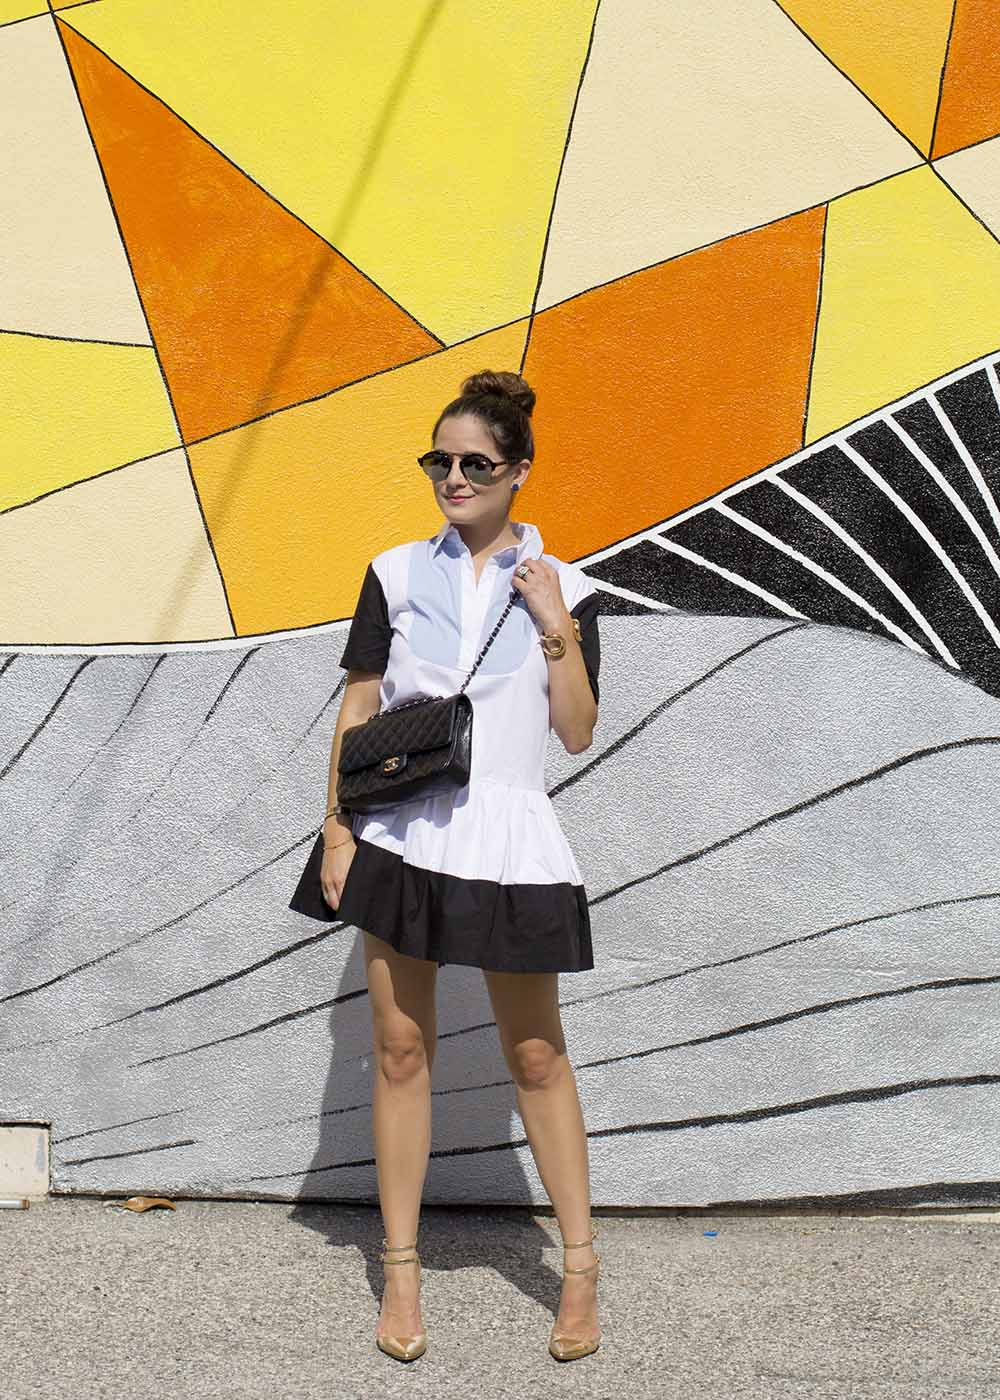 Los Angeles Colored Wall Mural